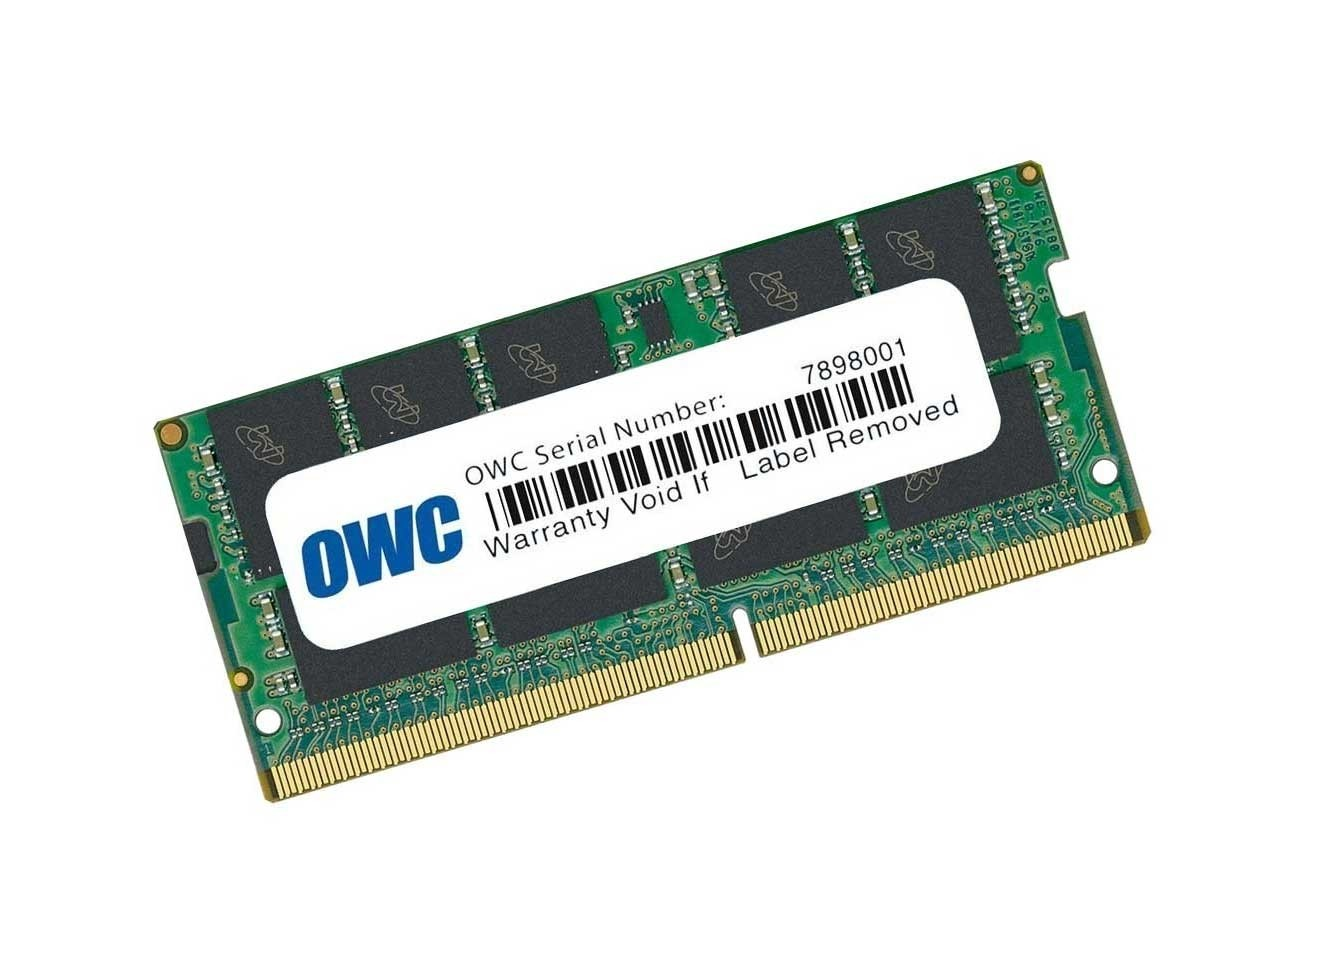 8.0GB 2666MHz DDR4 SO-DIMM PC4-21300 SO-DIMM 260 Pin Single Module Memory Upgrade, OWC2666DDR4S08G